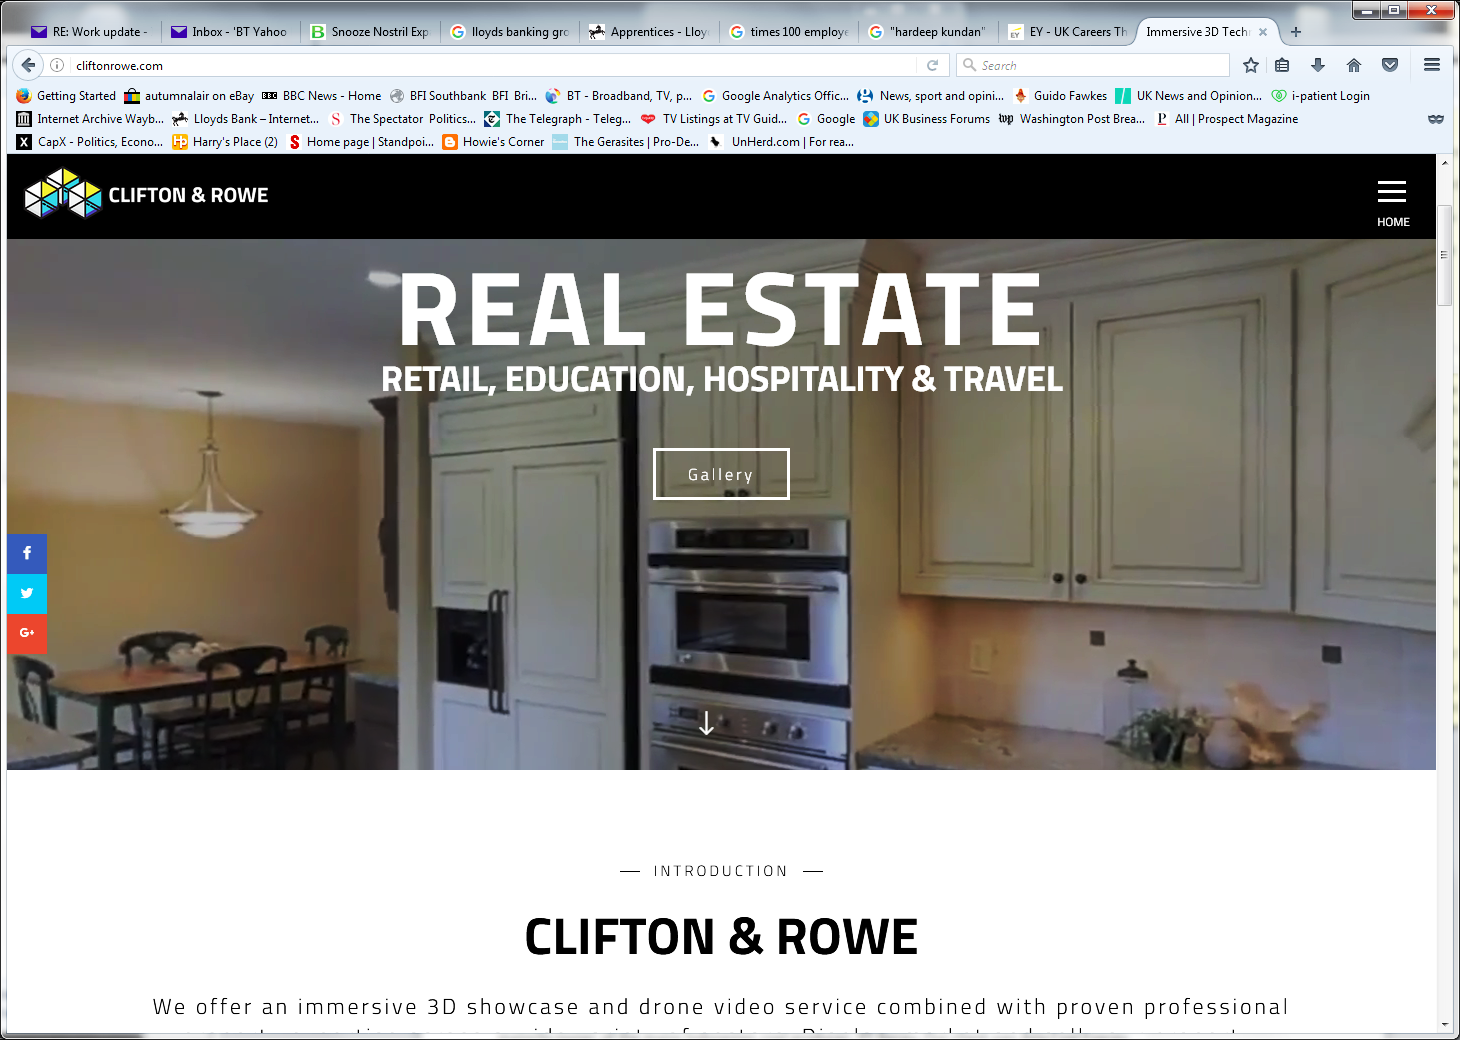 Clifton & Rowe property management - website page 1